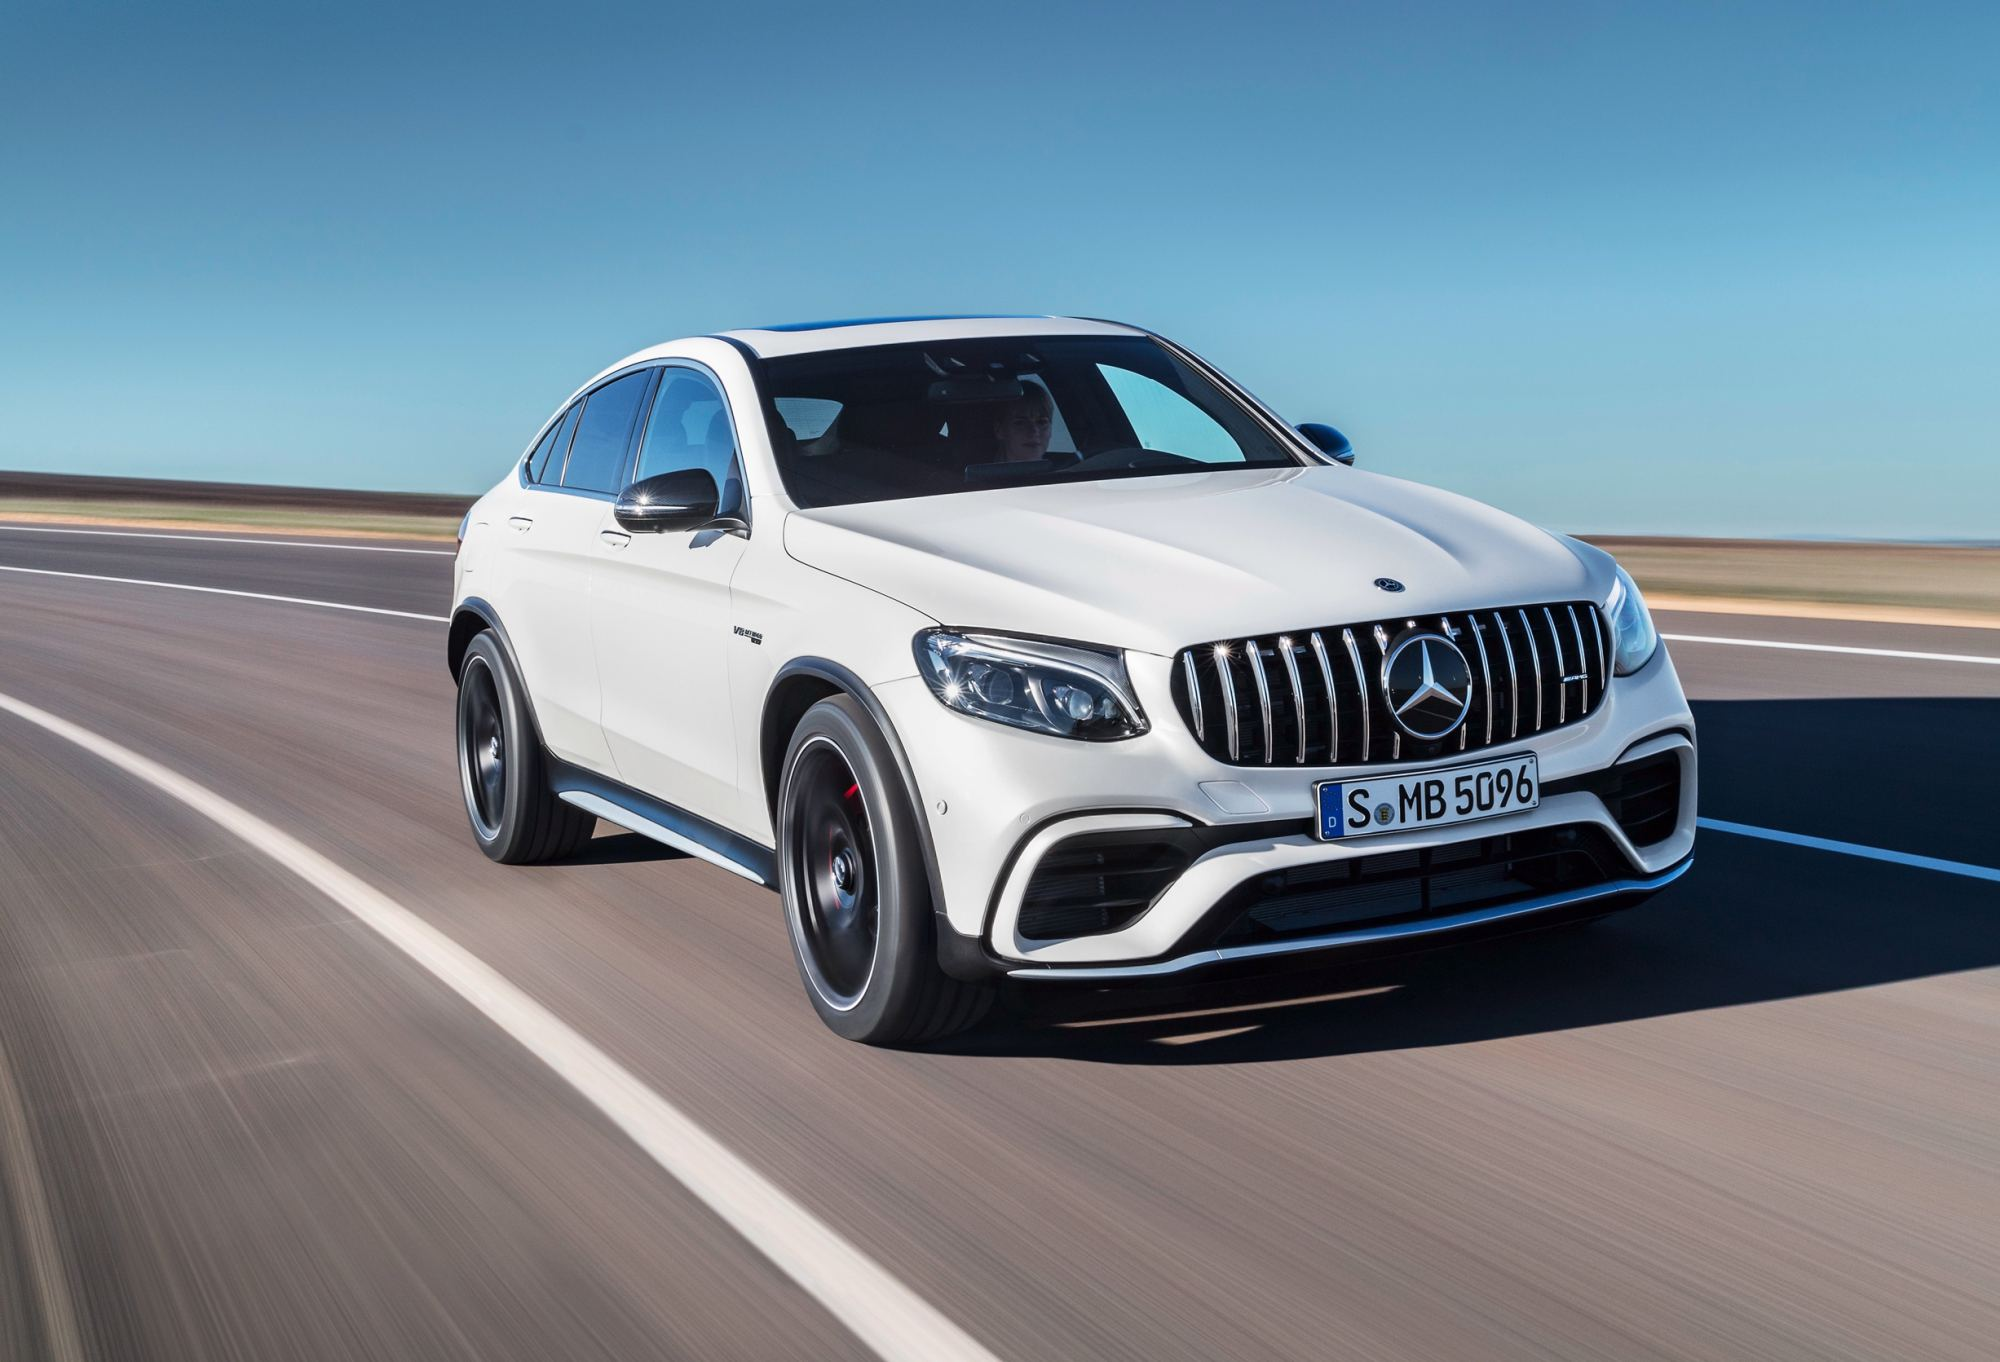 Volvo Q4 >> News - 370kW AMG GLC 63 S To Make Oz Debut In Q4 2017